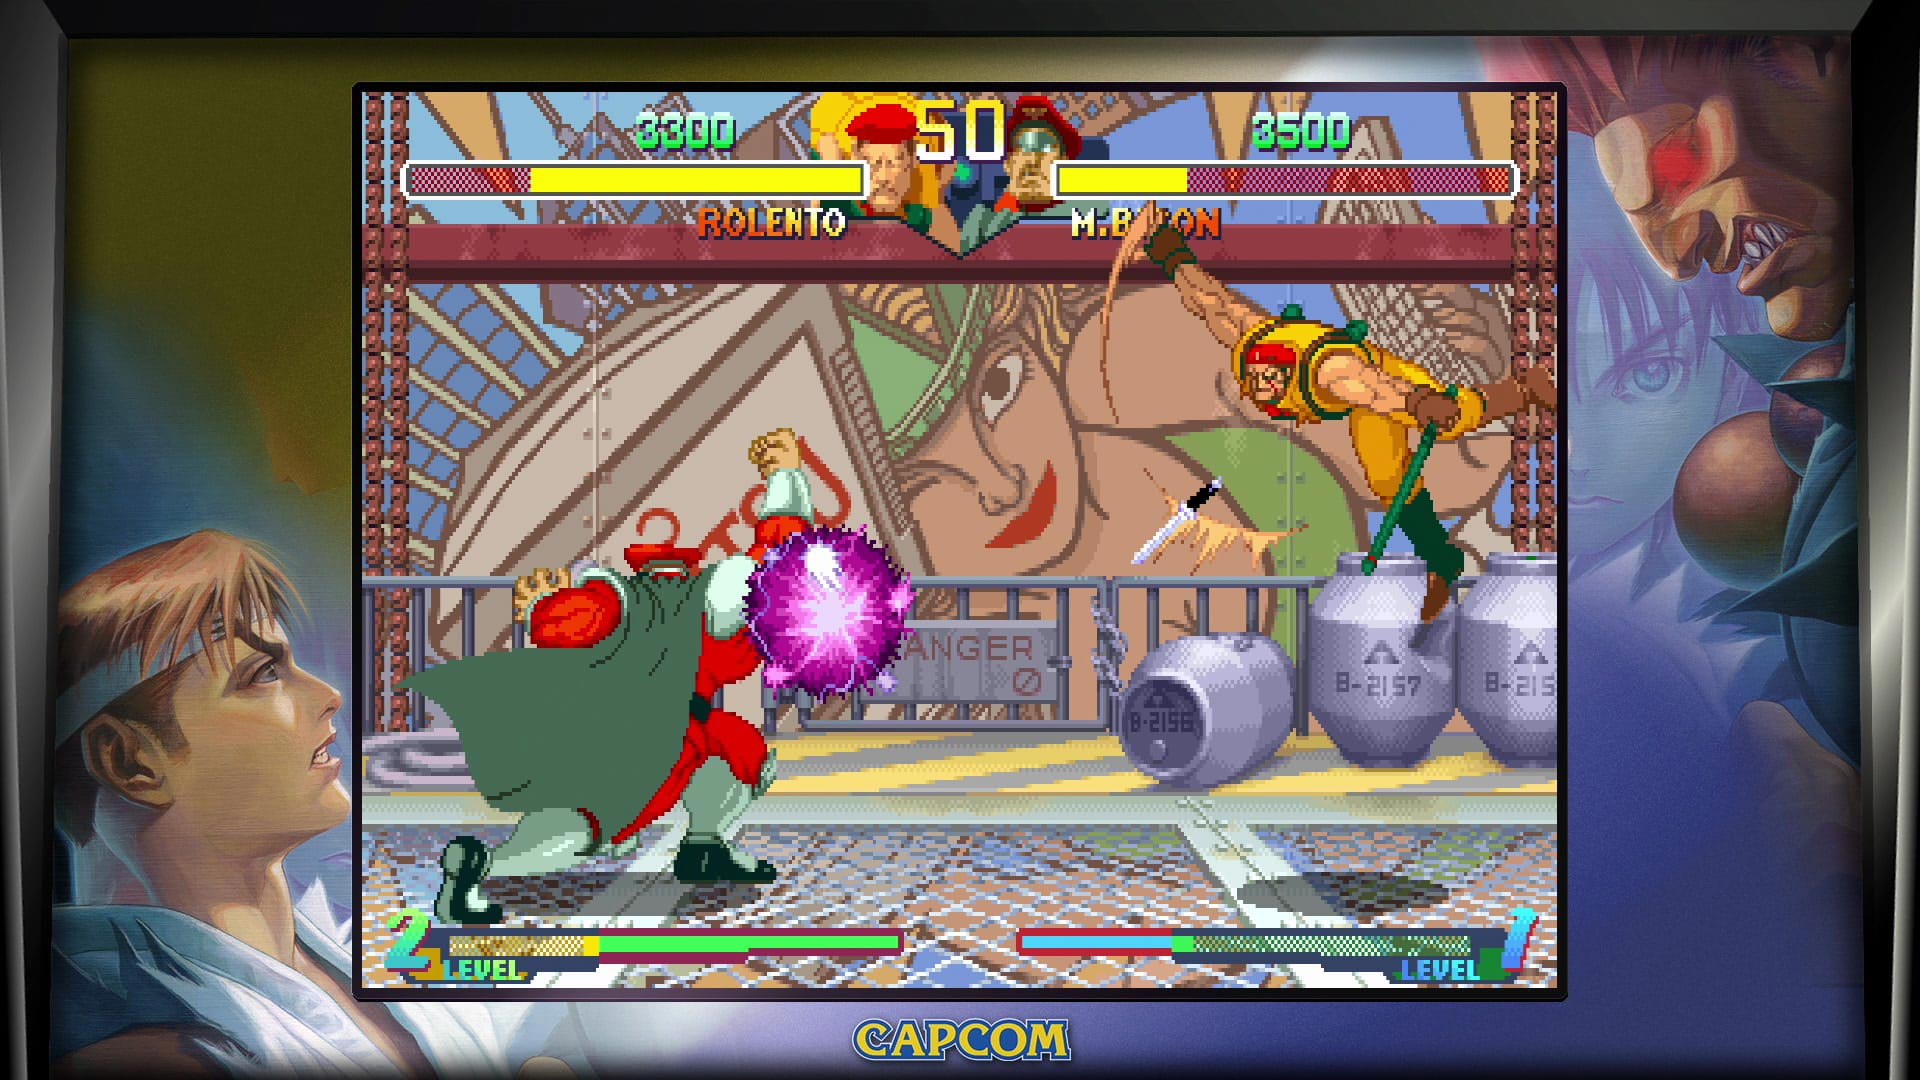 Street Fighter 30th Anniversary Collection images 8 out of 17 image gallery